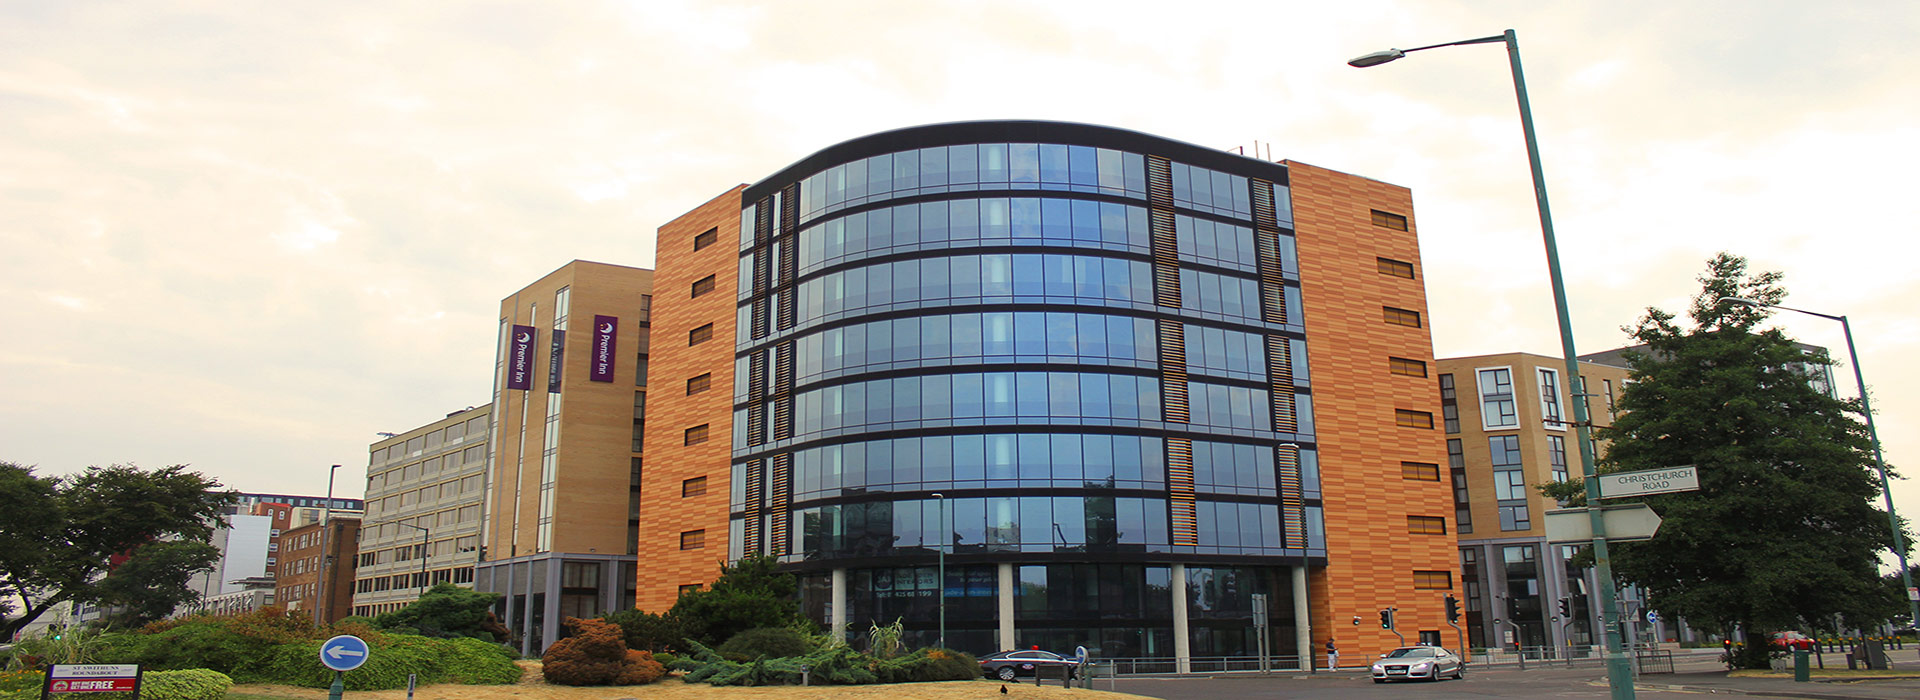 128 BED HOTEL, 920 STUDENT ROOMS & OFFICES IN BOURNEMOUTH